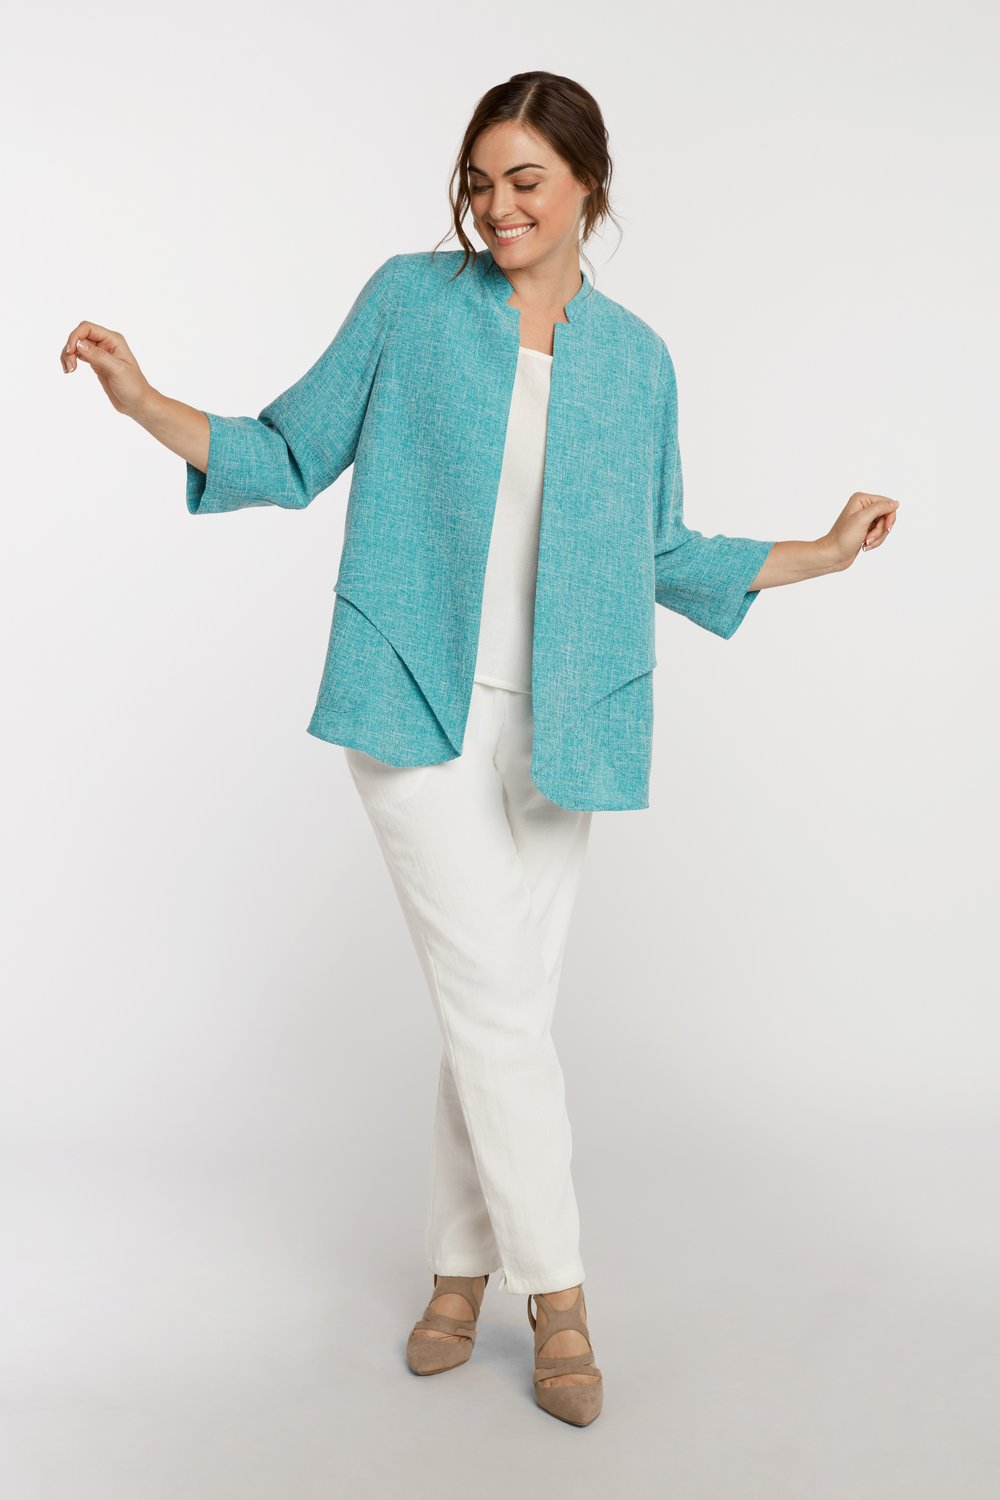 AA7137 - Waterfall Jacket Turquoise/White Heathered - JC15